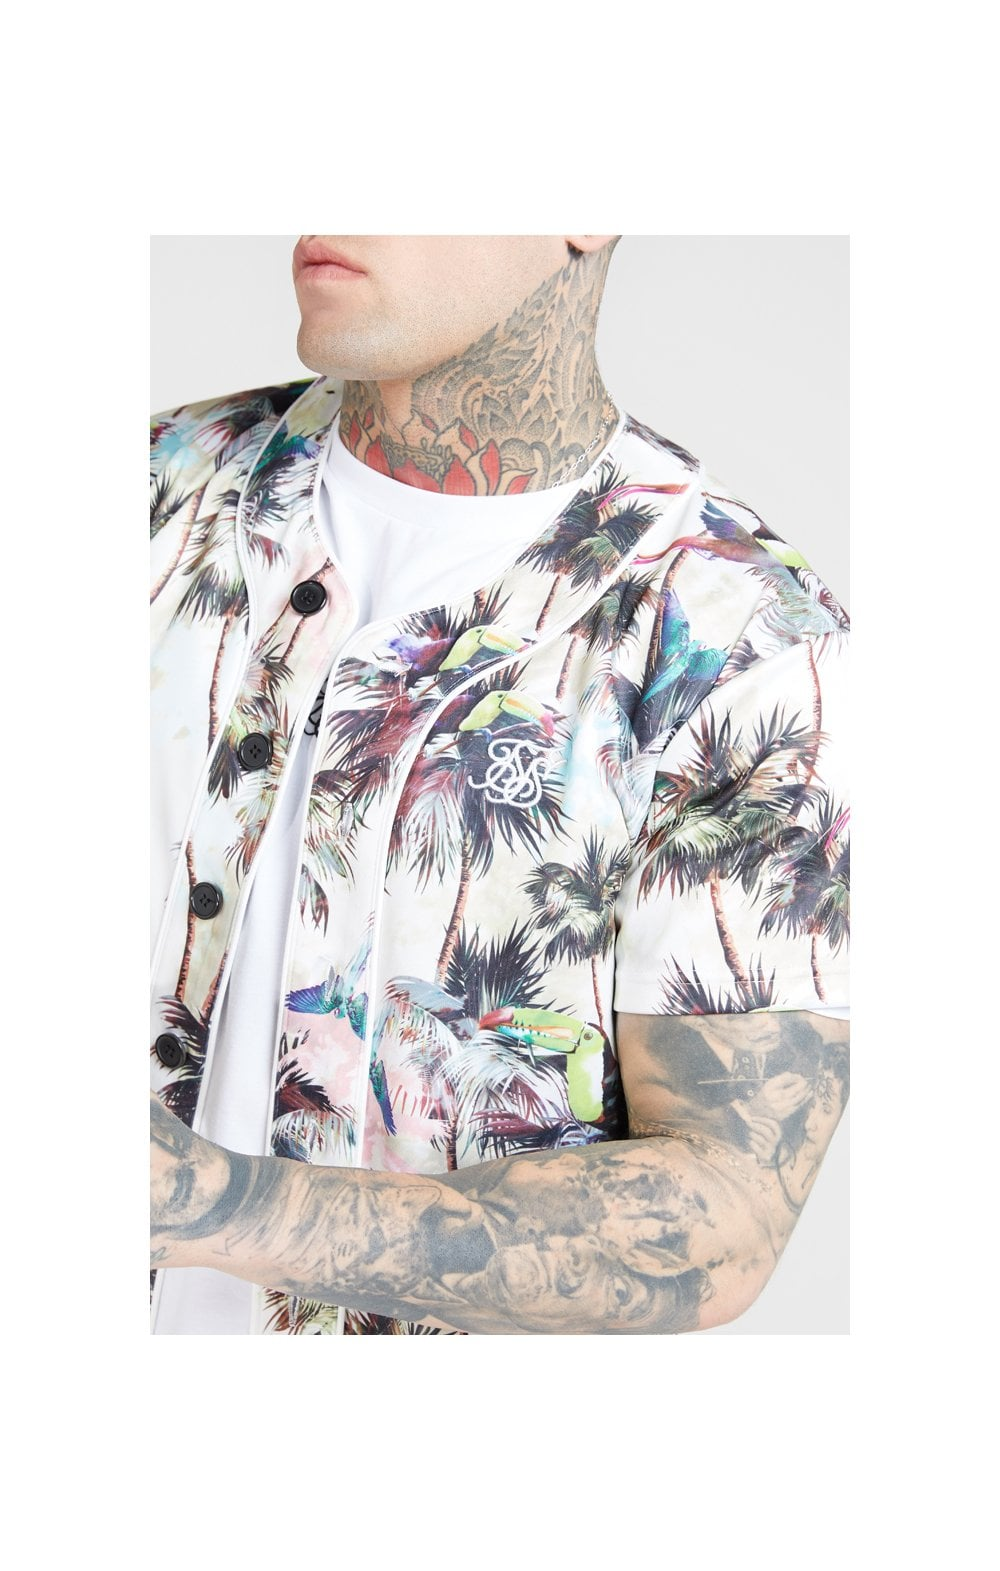 SikSilk Original Baseball Jersey – Beige & Black (1)